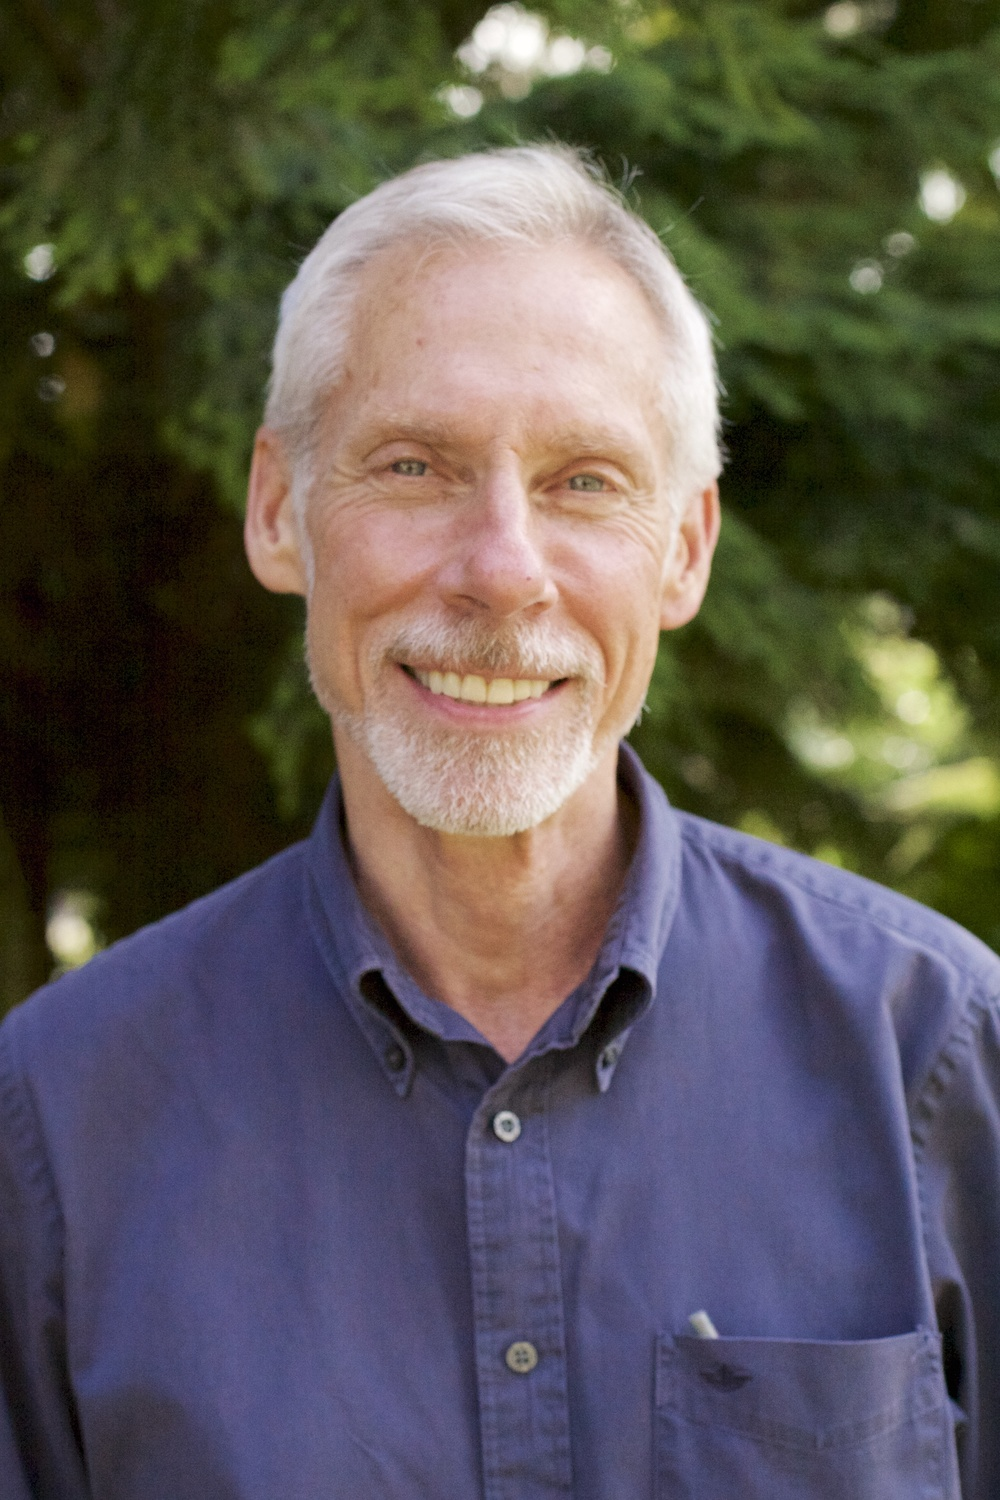 Bruce Hall, MA, LMHC , Therapist    ∙  Adolescents (16+)  ∙  Adults and Older Adults  ∙  Grief and Loss  ∙  Life Transitions  ∙  Adjustment Issues  ∙ LGBTQIA   ∙  Internalized Oppression  ∙  Depression  ∙  Anxiety and Panic  ∙  Trauma